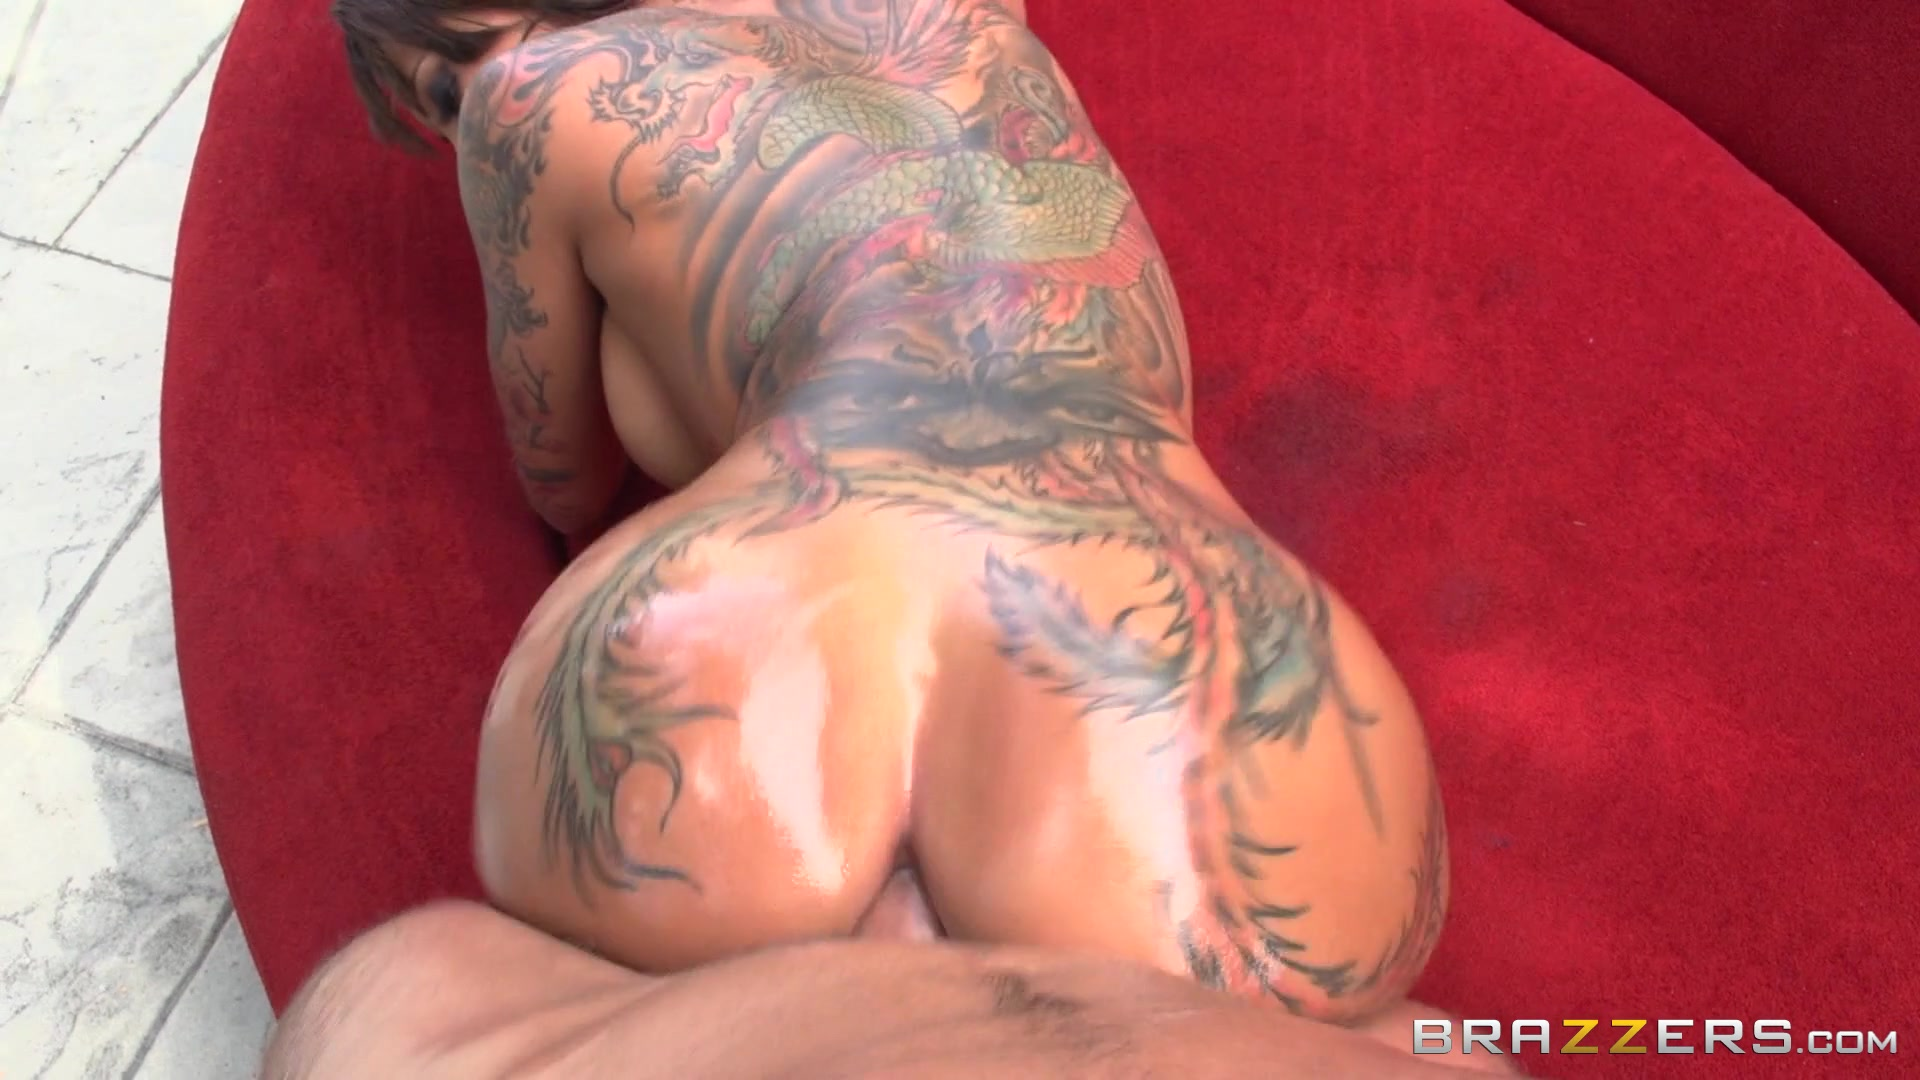 Anal Sex With Big Curvy Oiled Butt Hot Girl